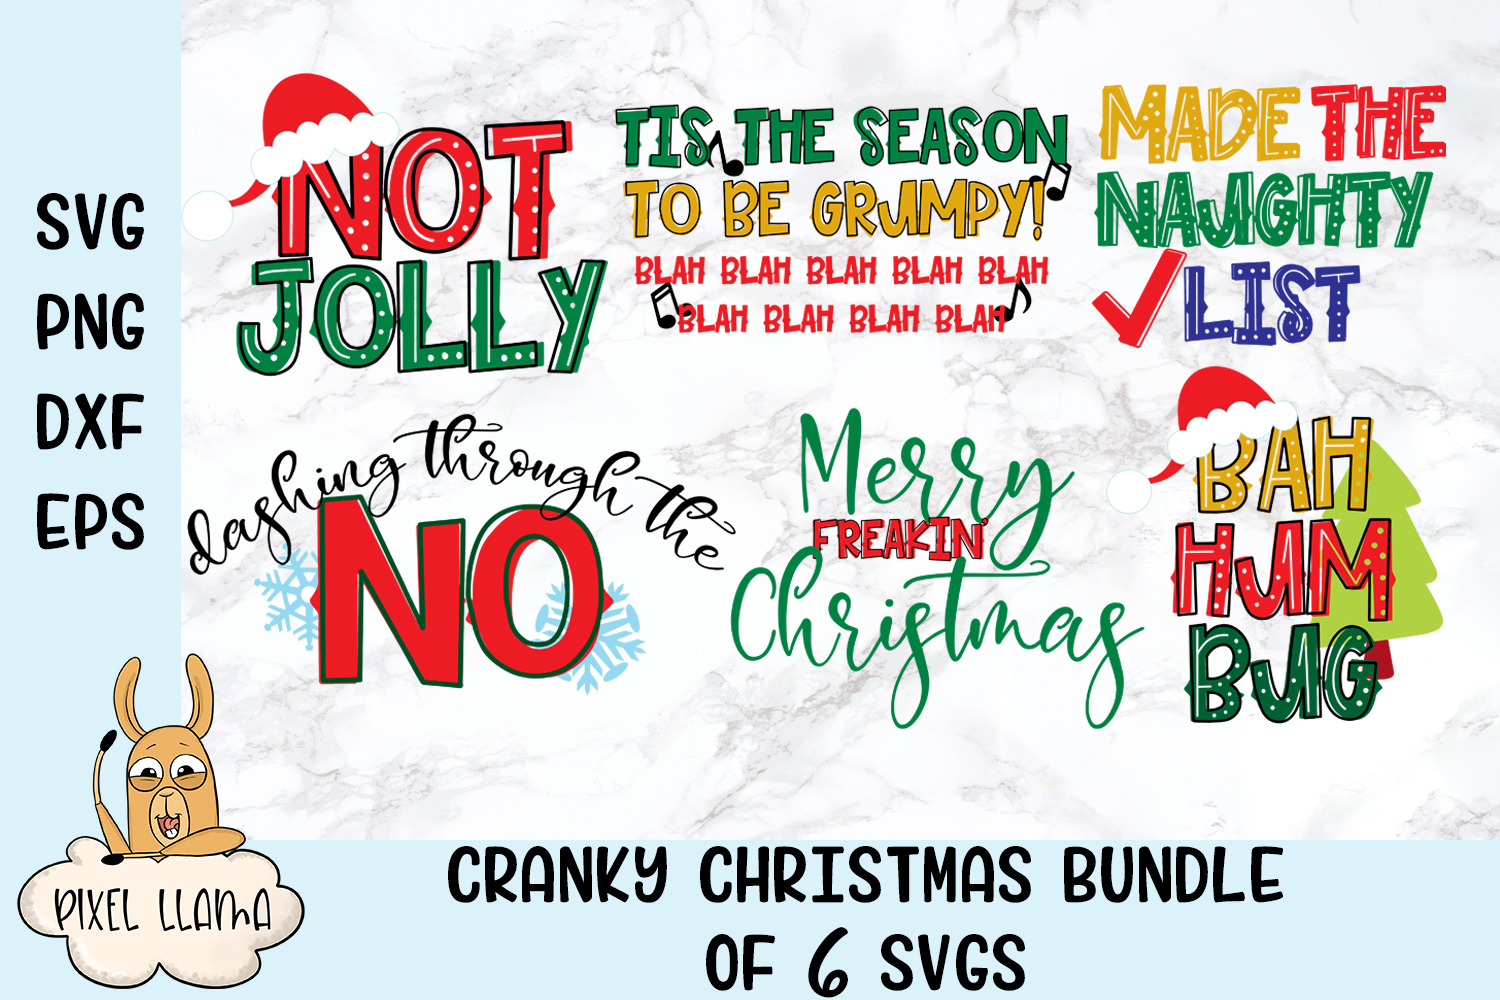 View Bah Hum Bug Christmas Svg And Dxf Cut File Ò Png Ò Download File Ò Cricut Ò Silhouette Crafter Files